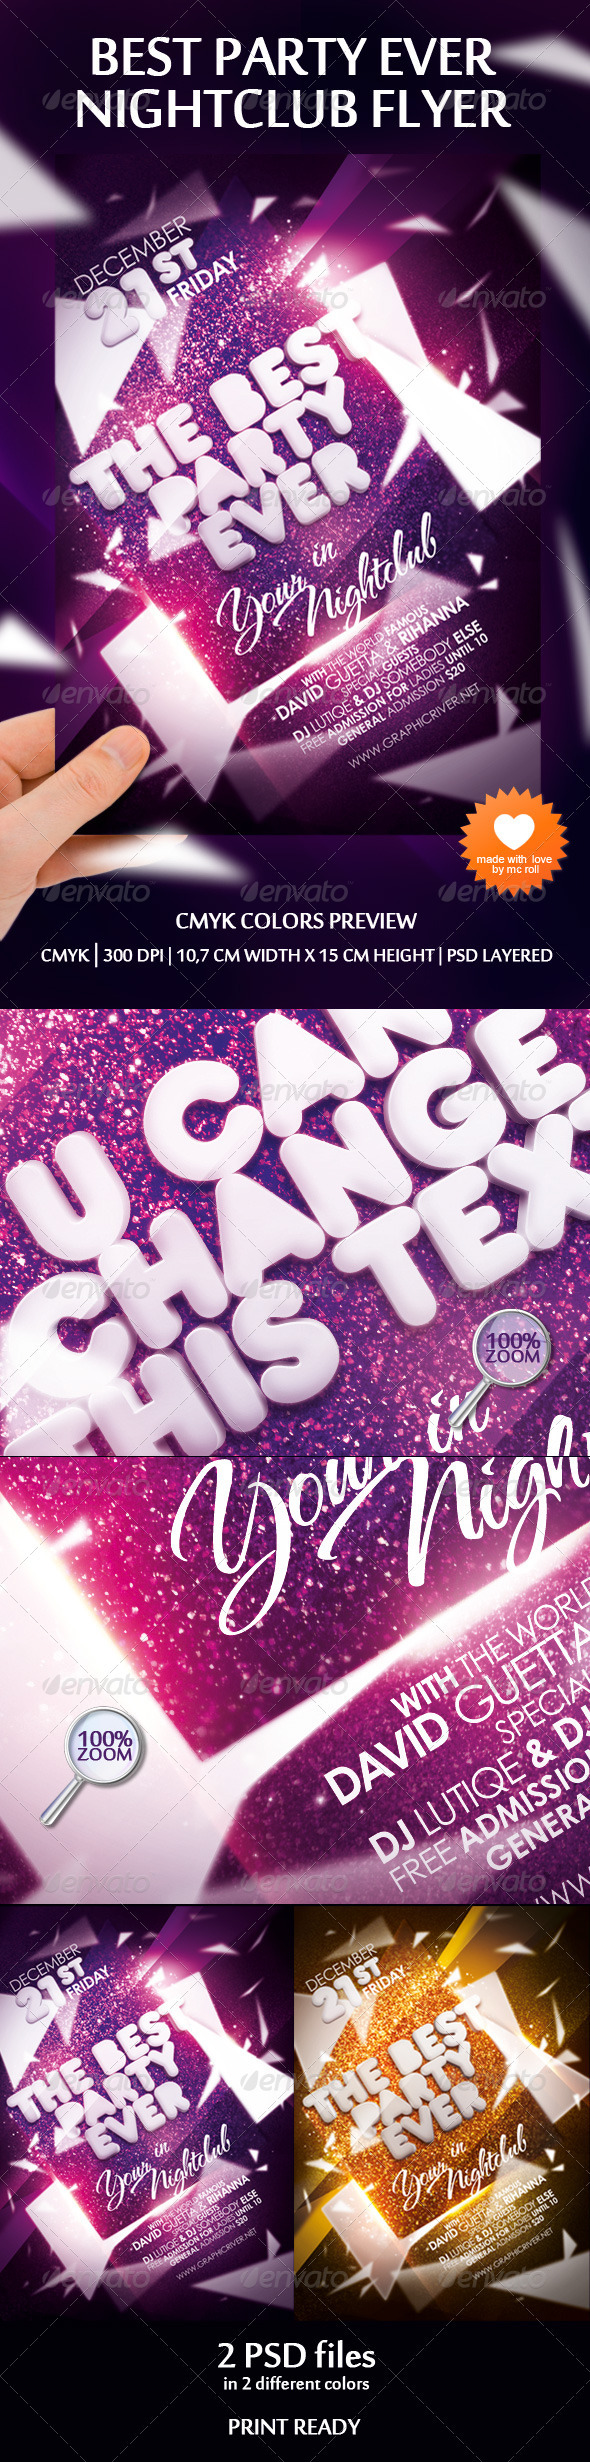 Graphic River Best Party Ever Nightclub Flyer Print Templates -  Flyers  Events  Clubs & Parties 1044514